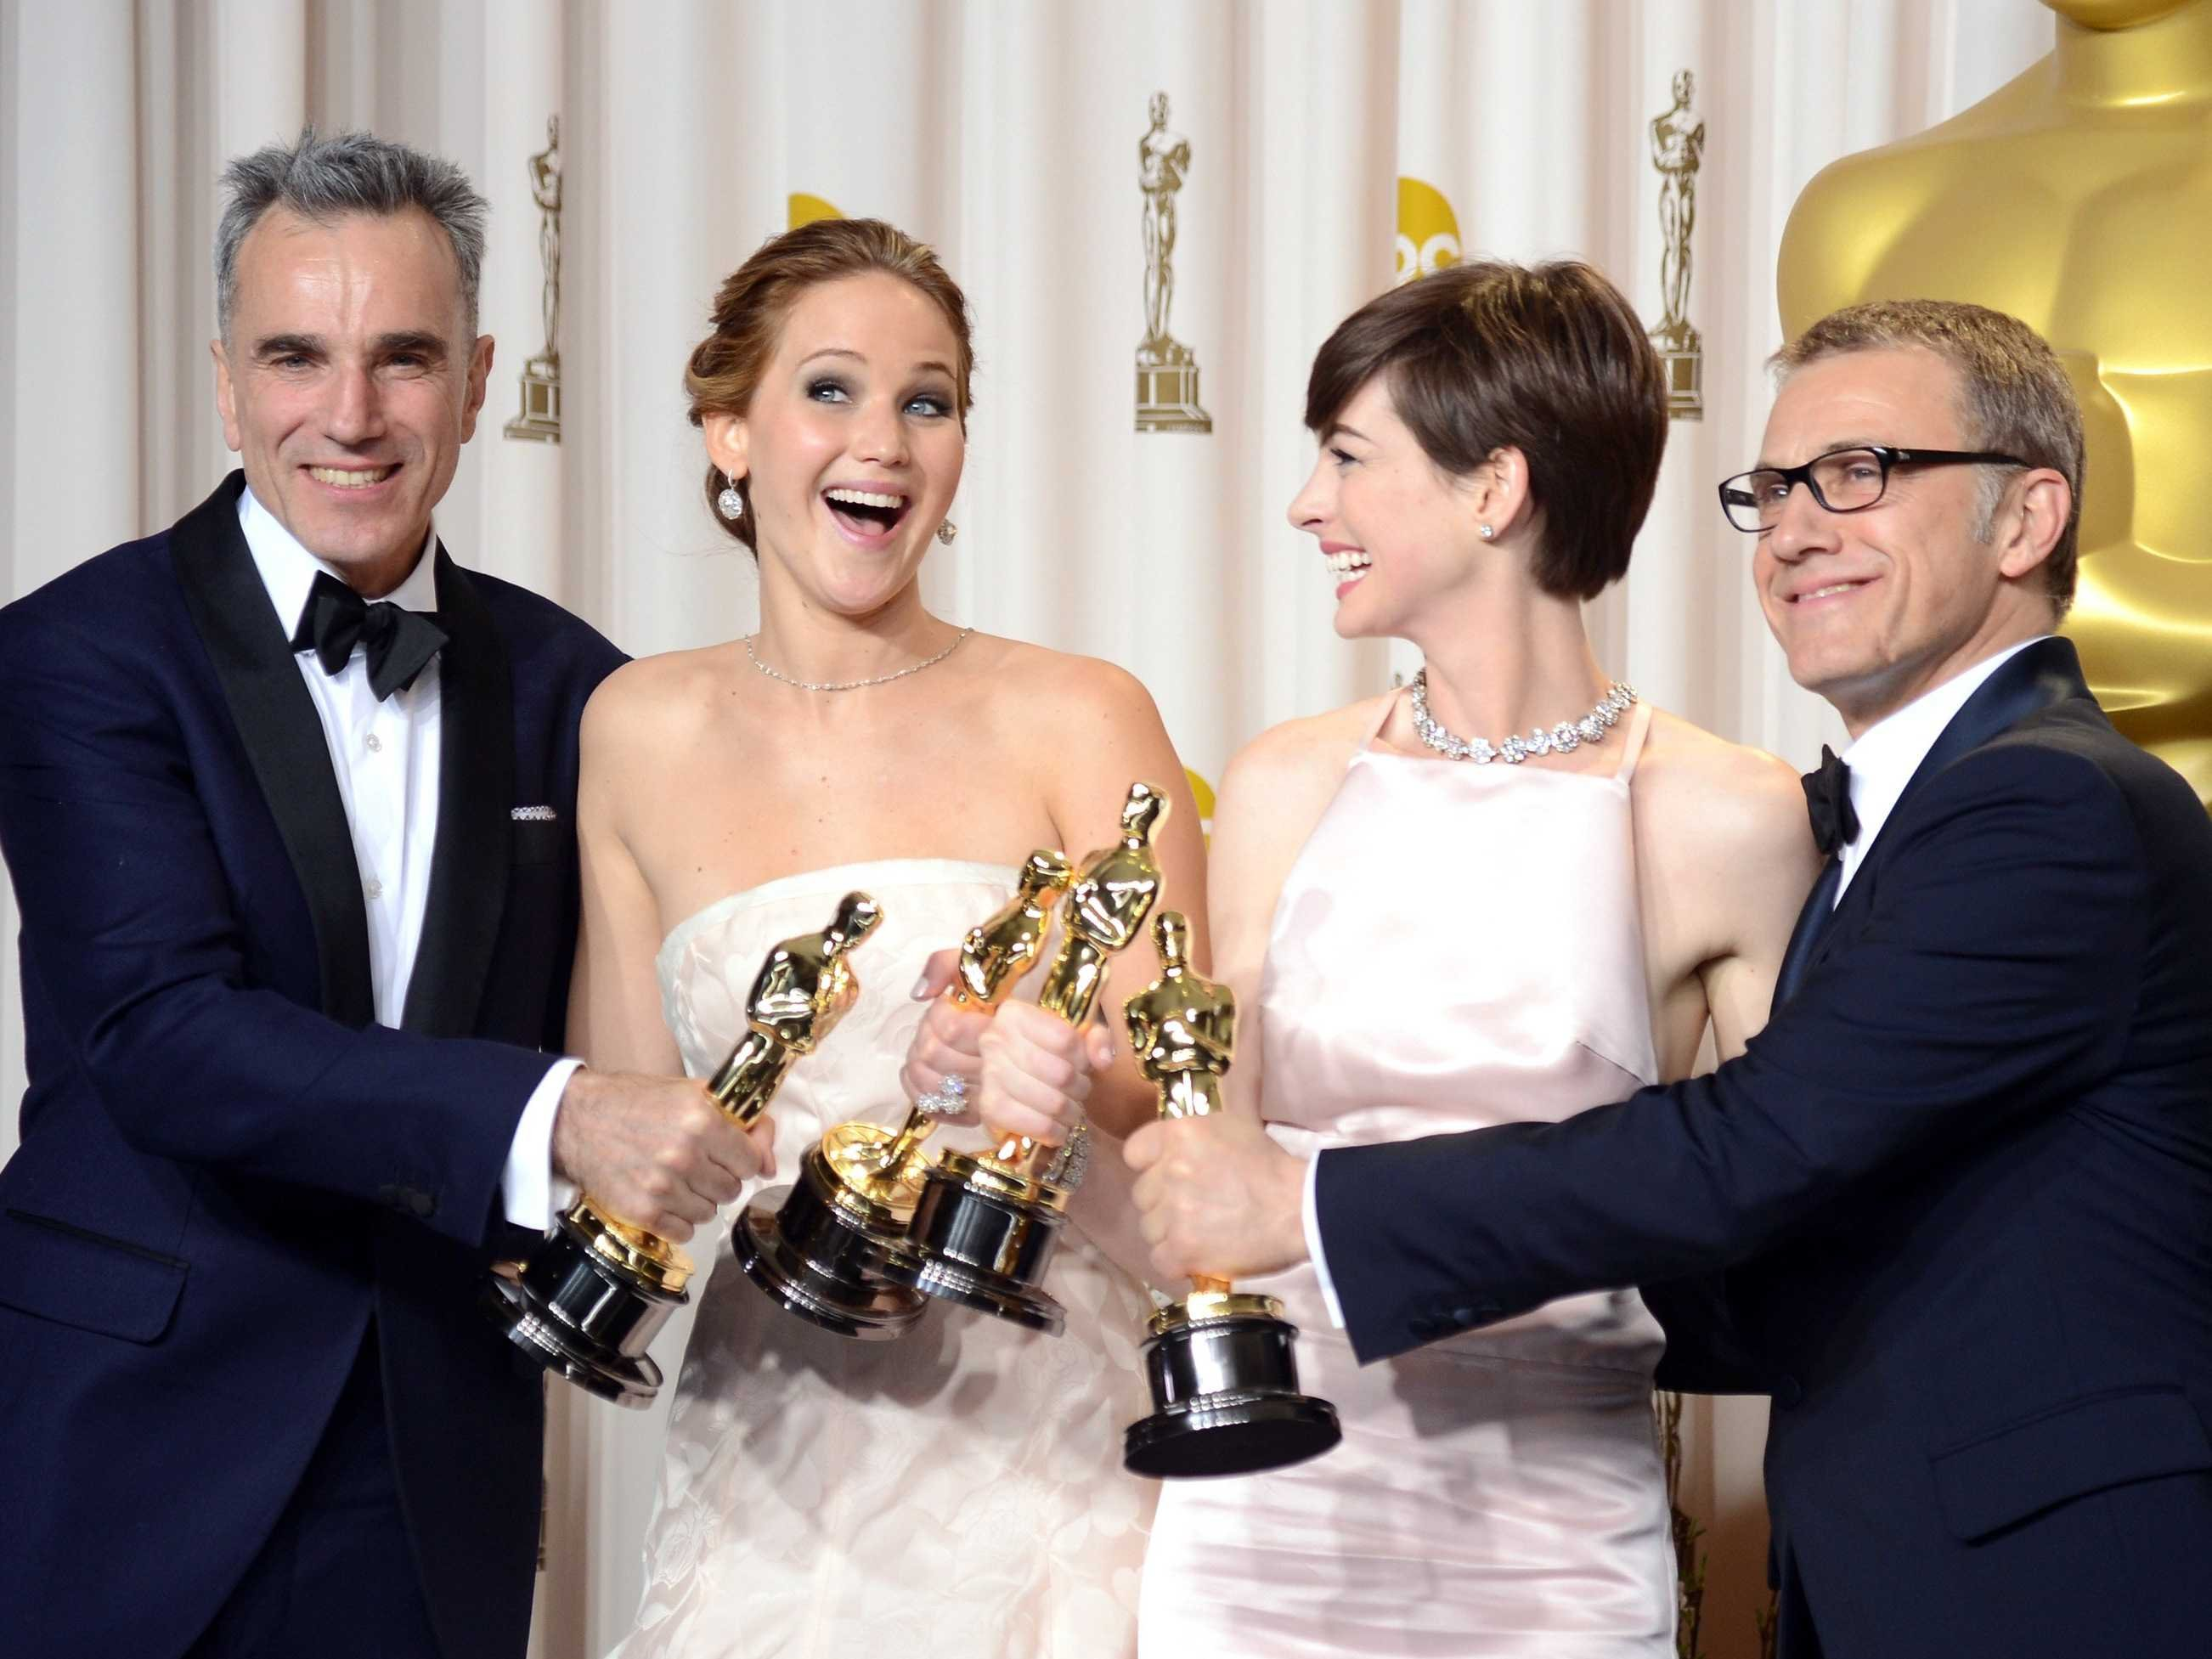 jennifer-lawrence-daniel-day-lewis-oscars-2013.jpg